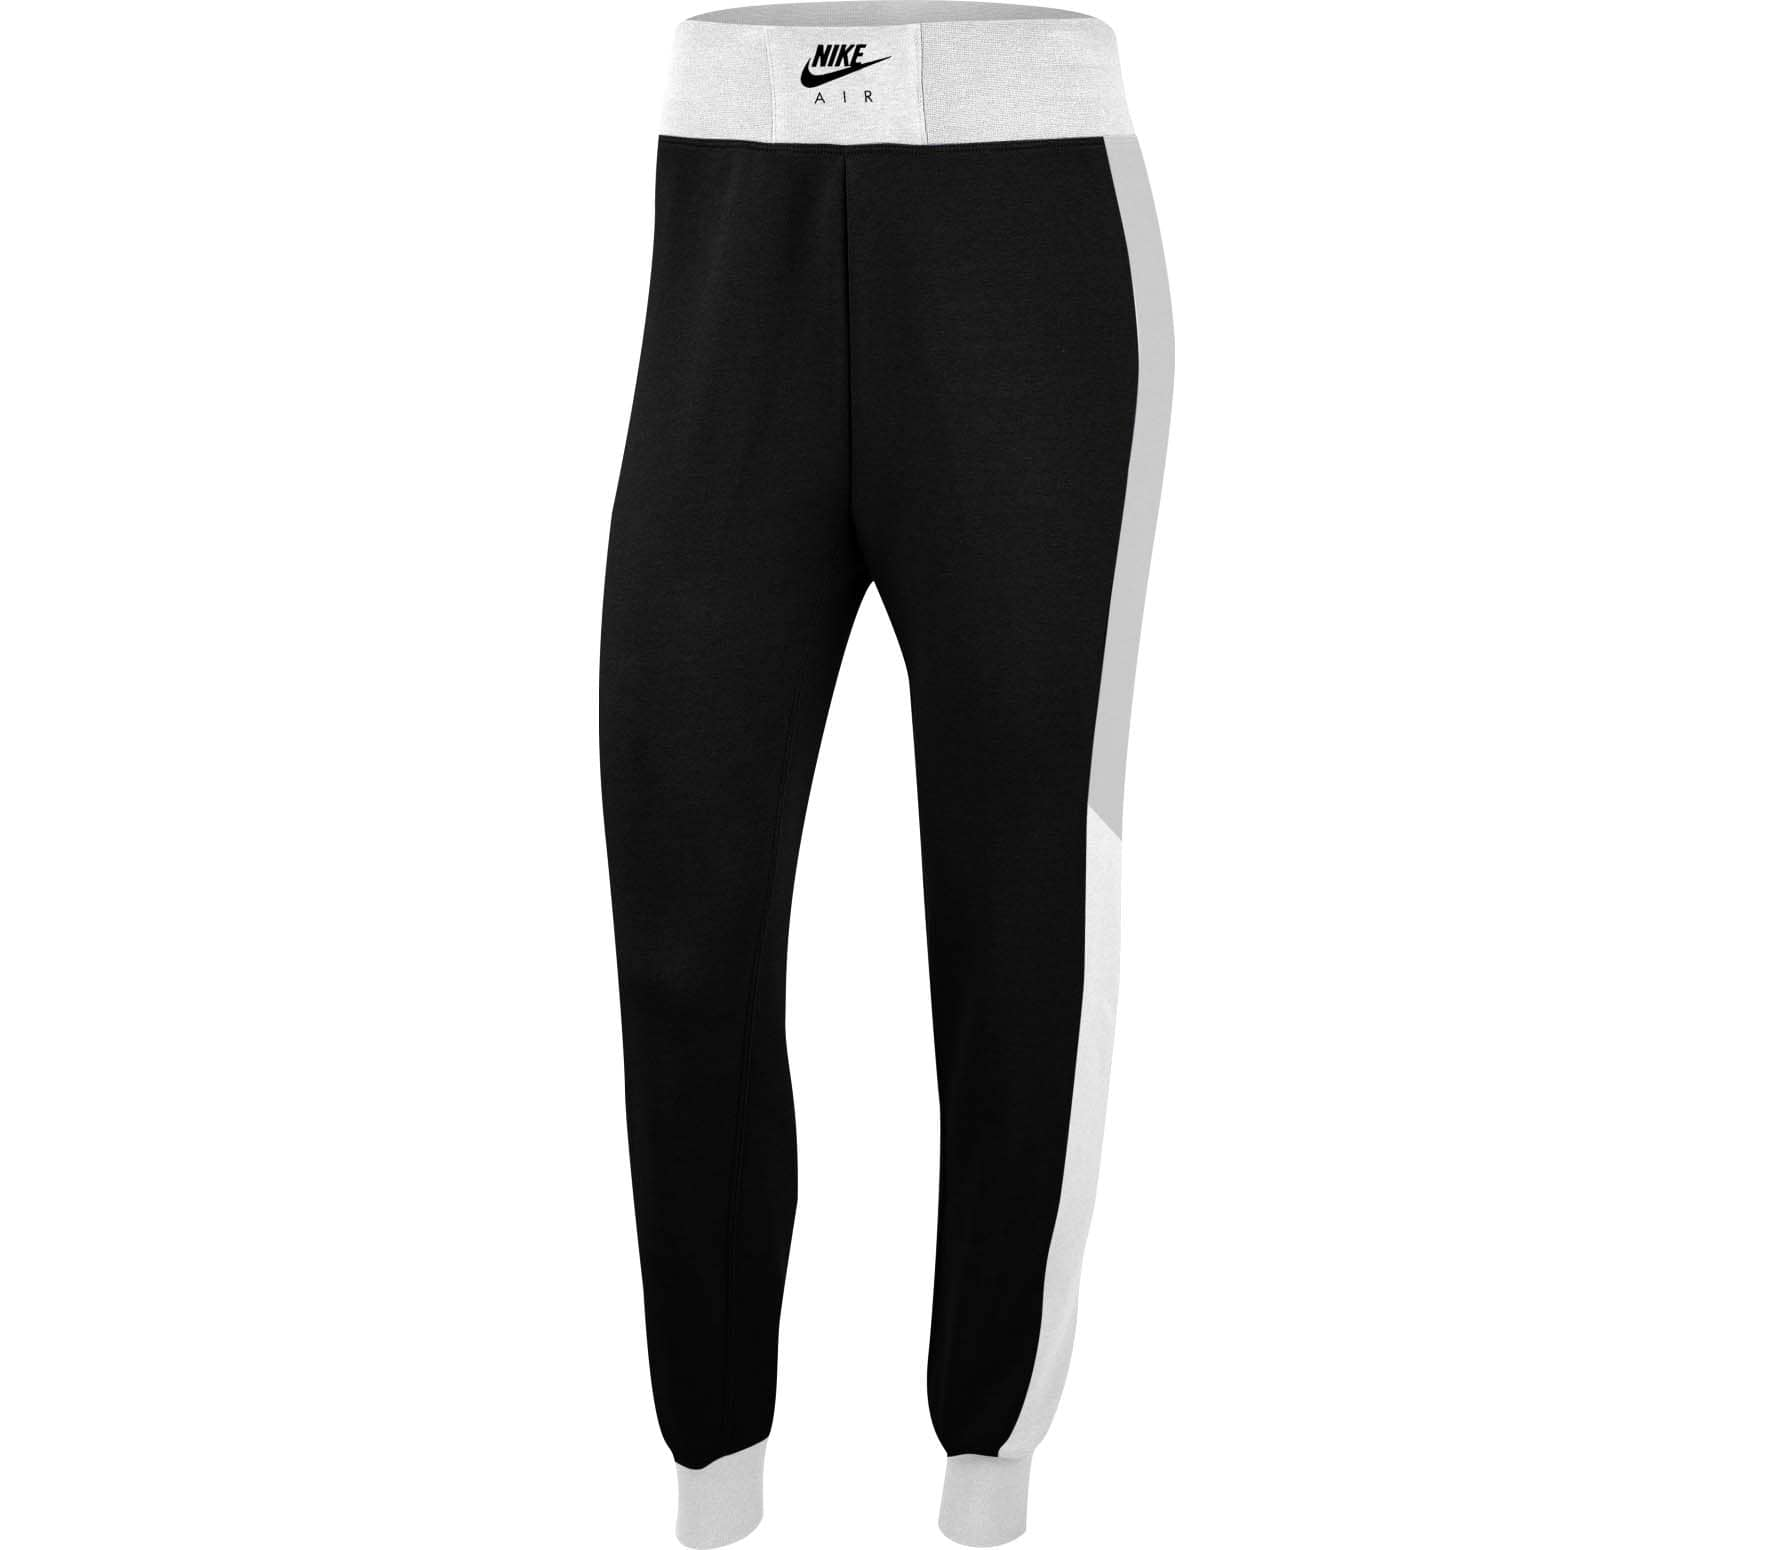 Air Women Training Tights